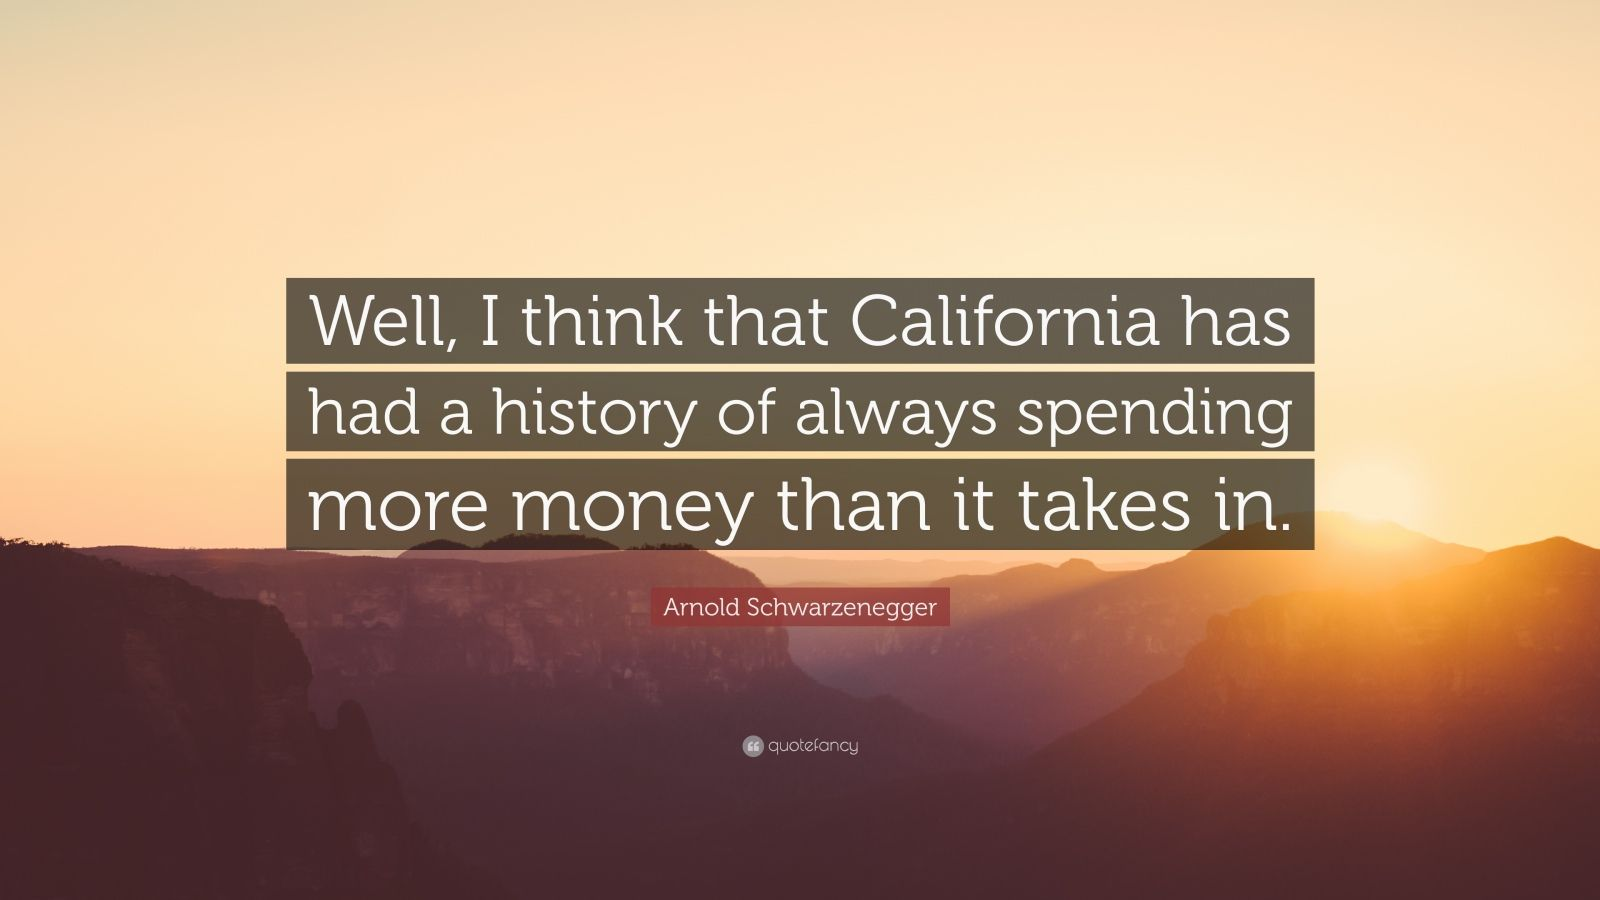 """Arnold Schwarzenegger Quote: """"Well, I think that California has had a history of always spending more money than it takes in."""""""